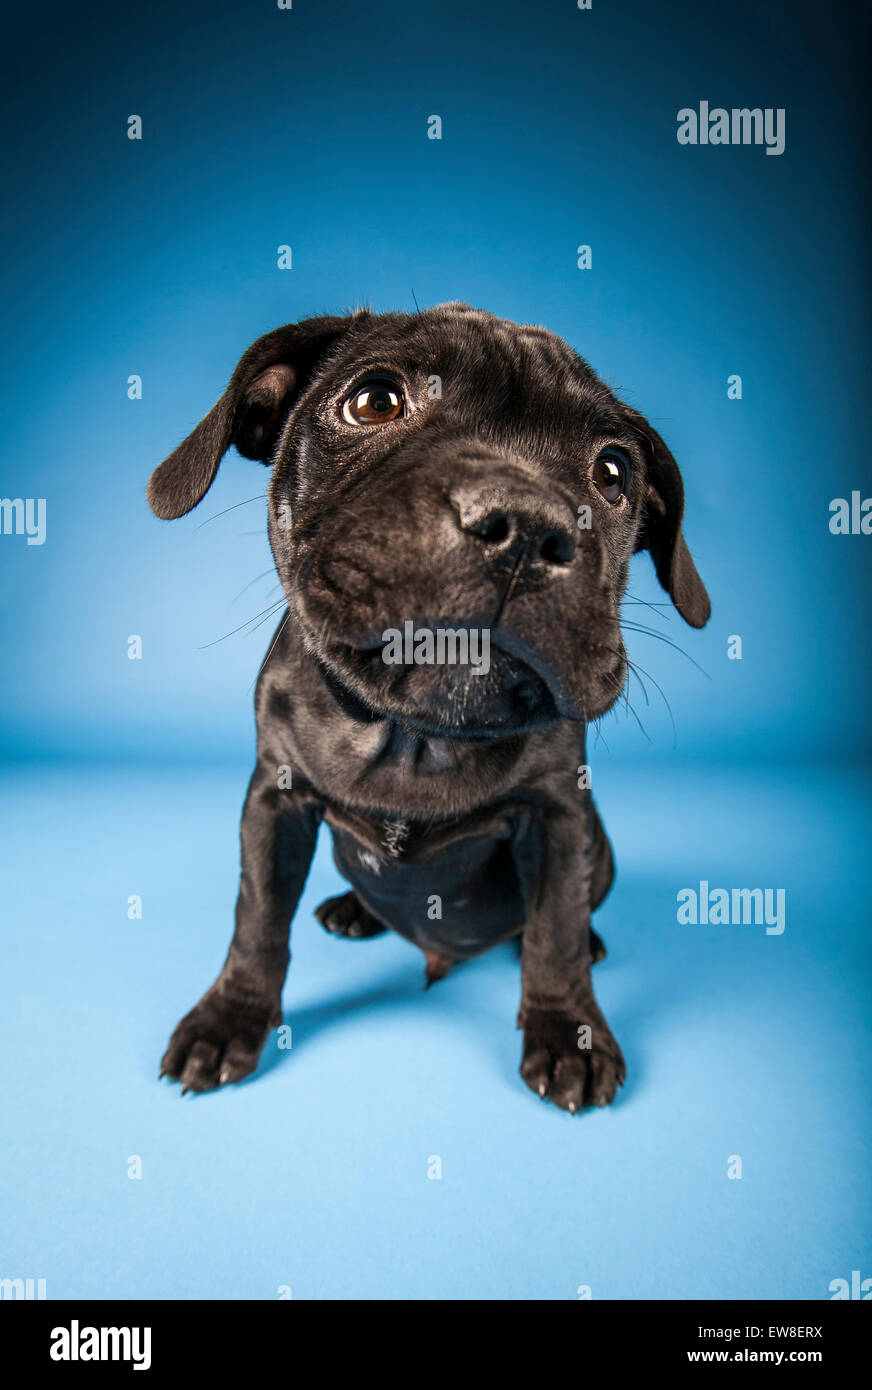 Black Staffordshire Bull Terrier puppy on blue background - Stock Image